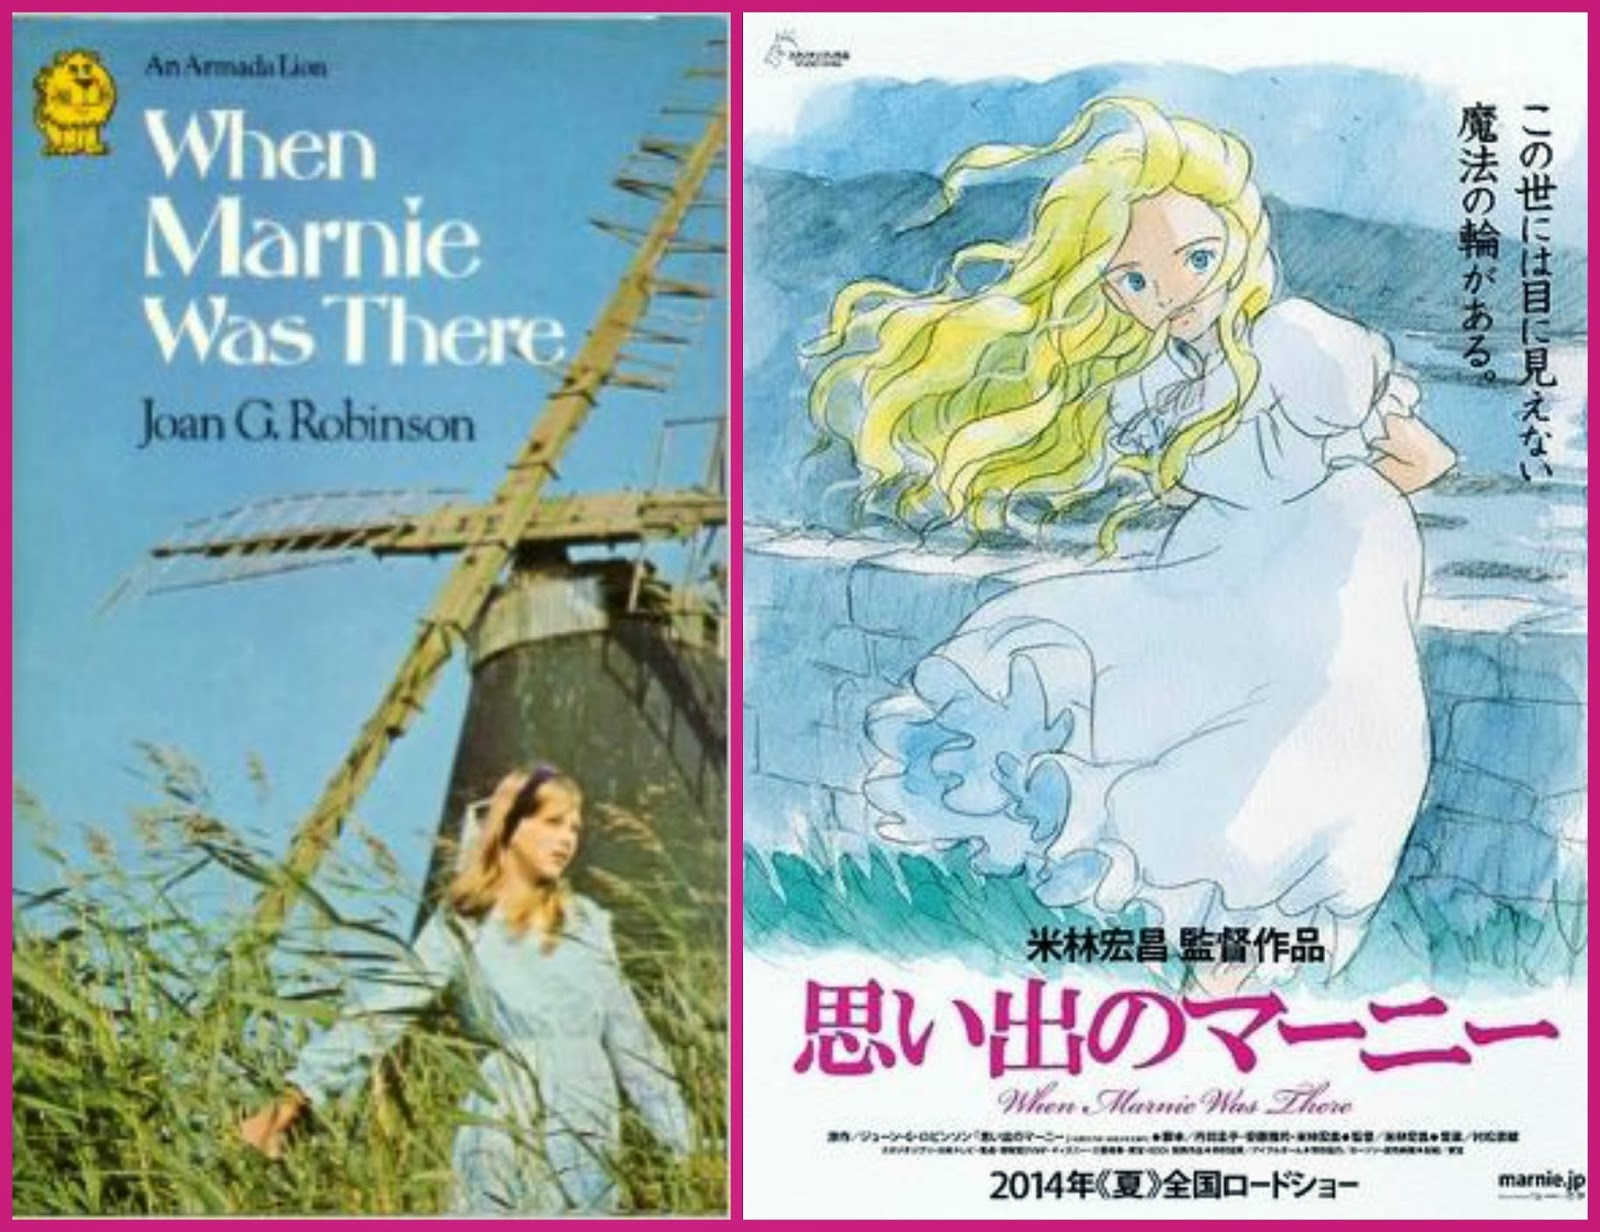 New Studio Ghibli Feature When Marnie Was There